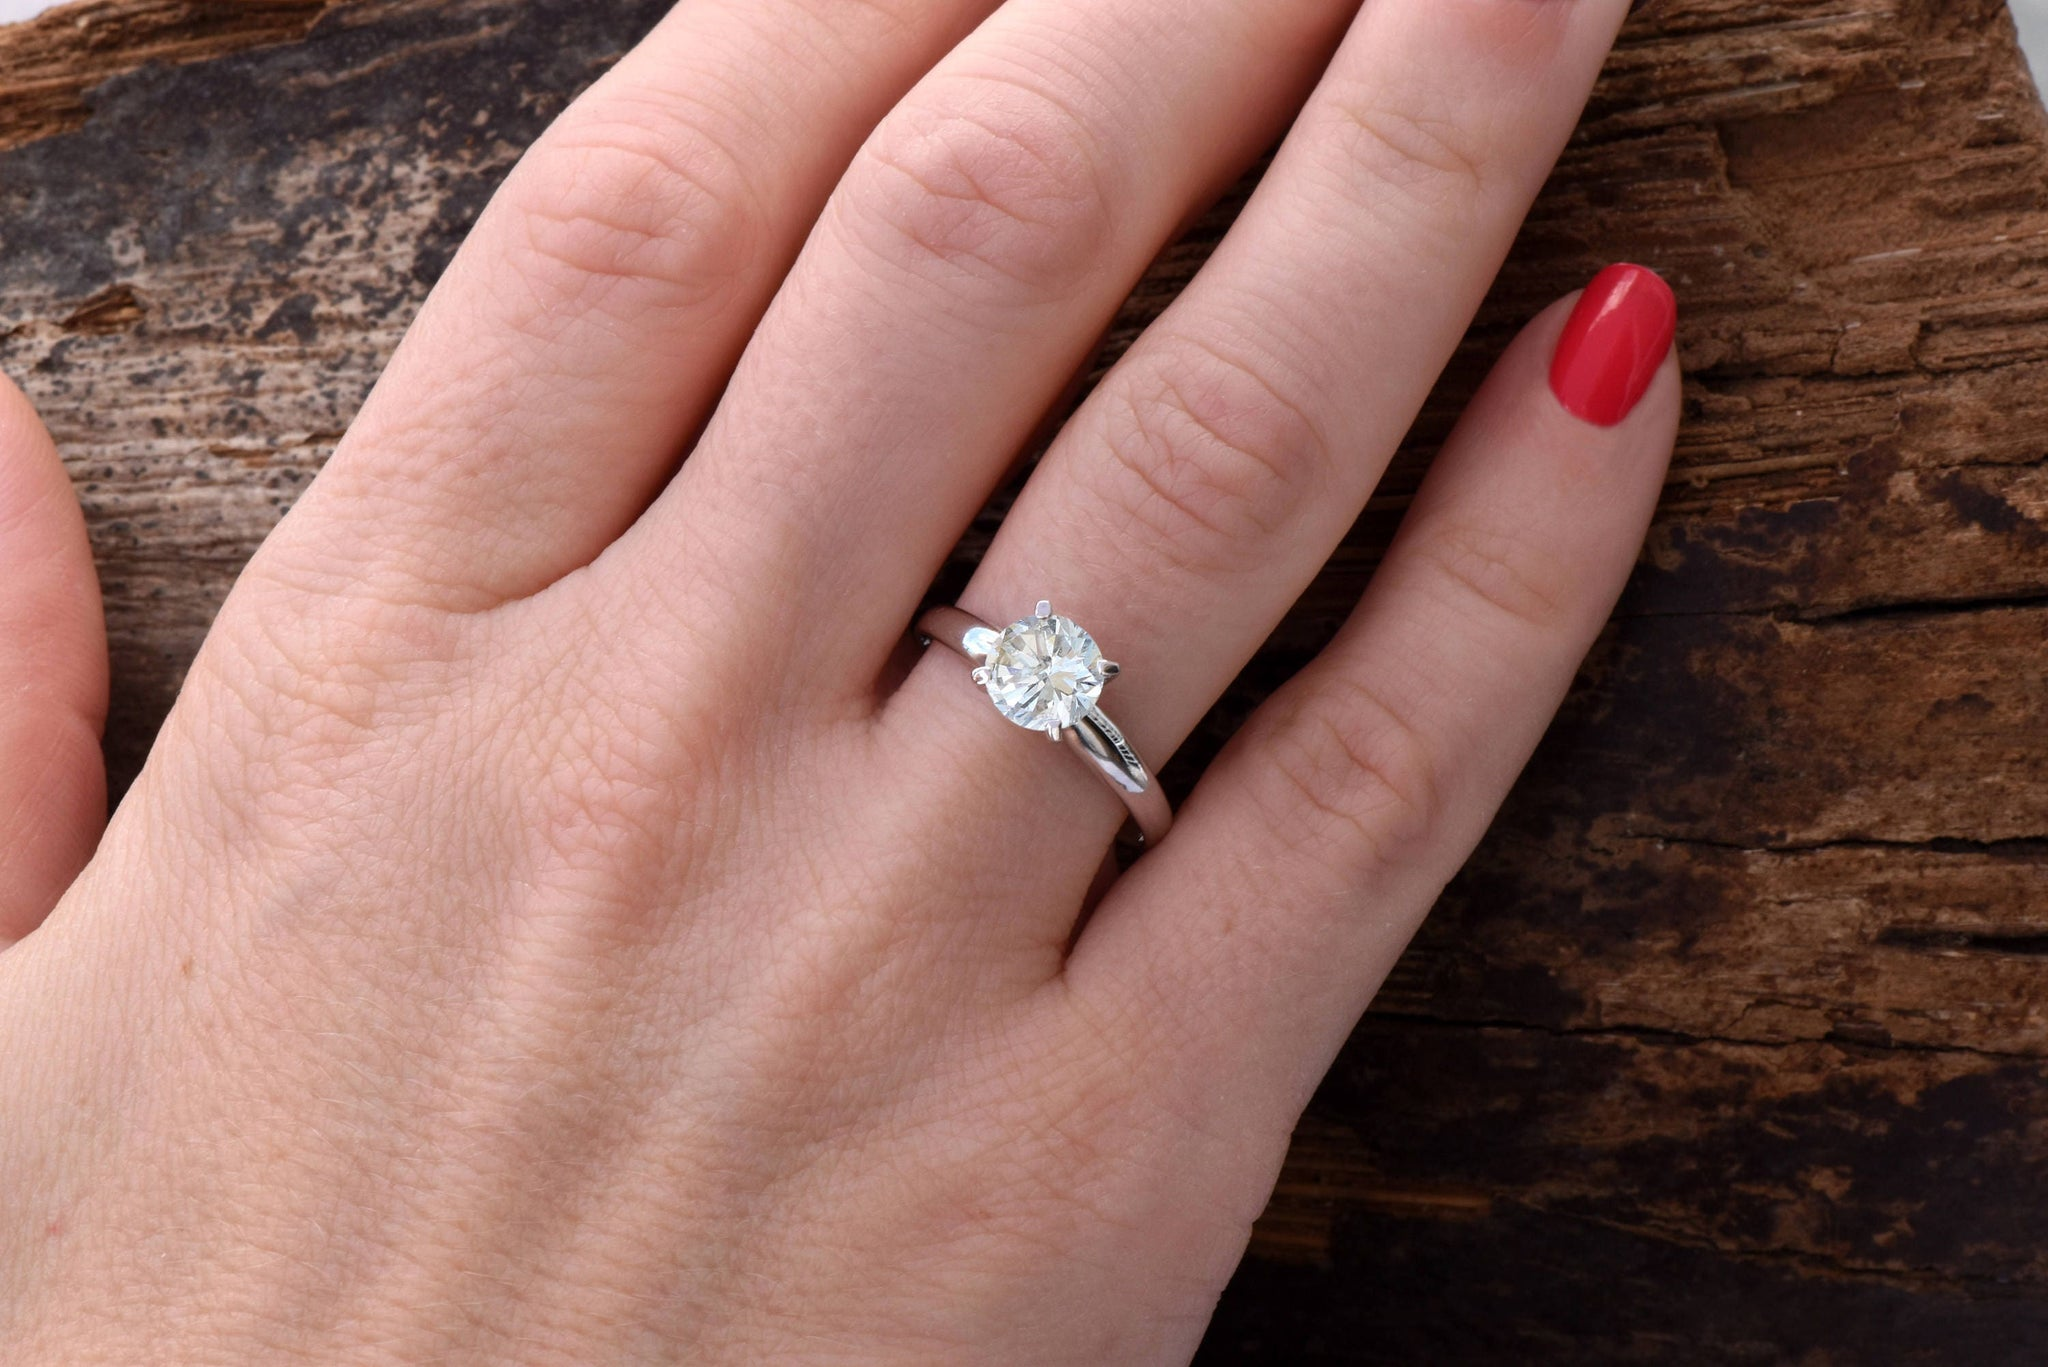 Solitaire ring 1 carat-Diamond Engagement Ring-Diamond Solitaire-Gold Ring-Promise ring-Art deco ring-Custom Ring-Classic Round Shape Ring